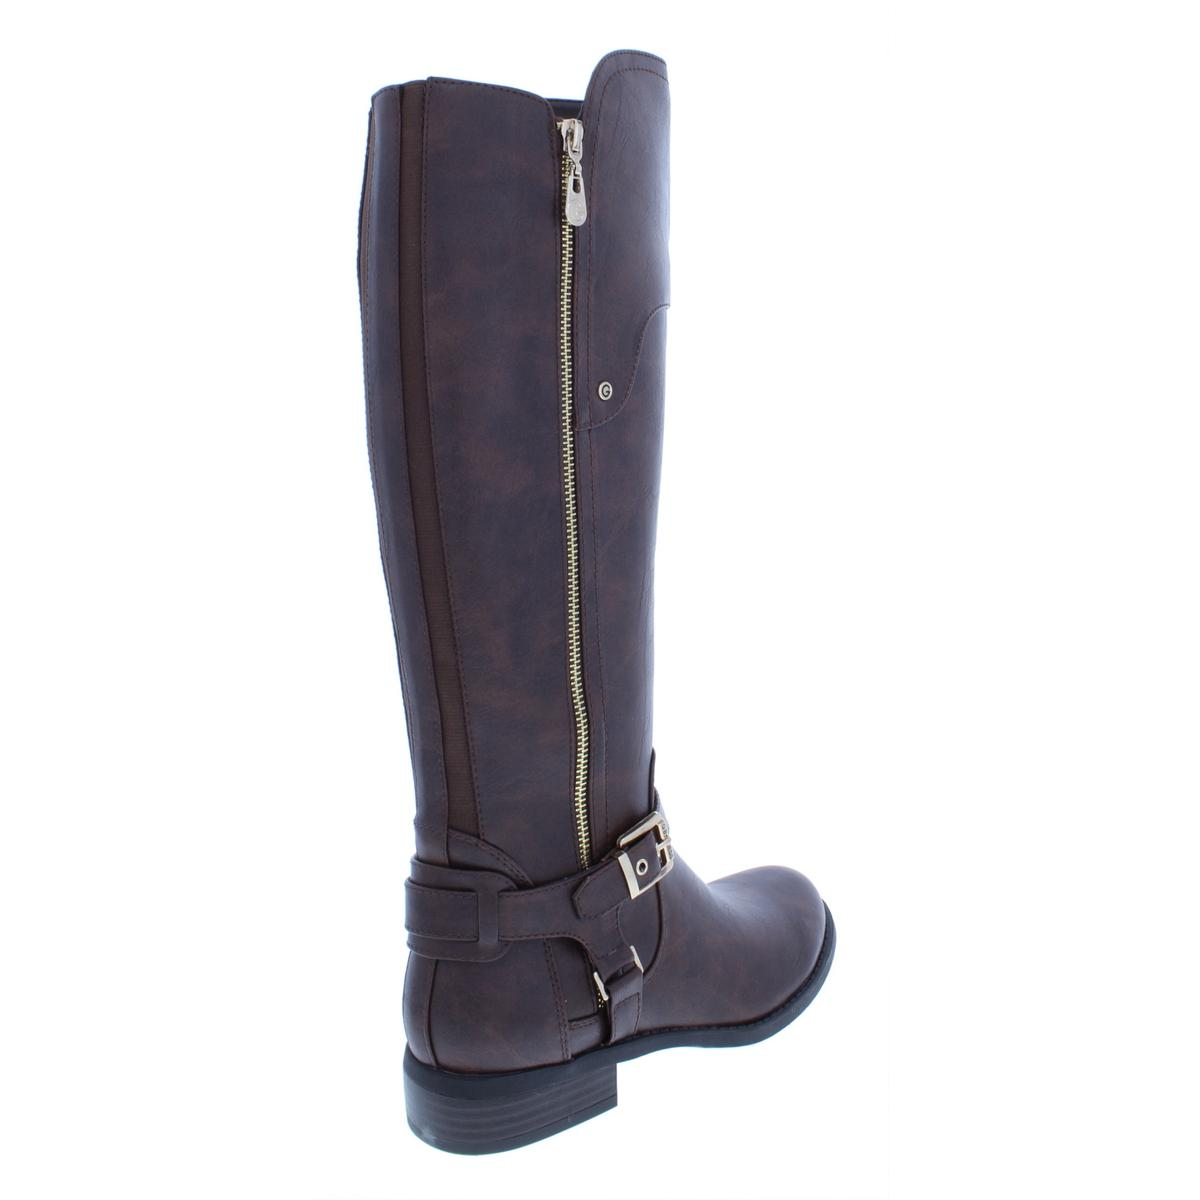 c1b1b38f670 G by Guess Womens Harson Faux Leather Riding Over-The-Knee Boots ...